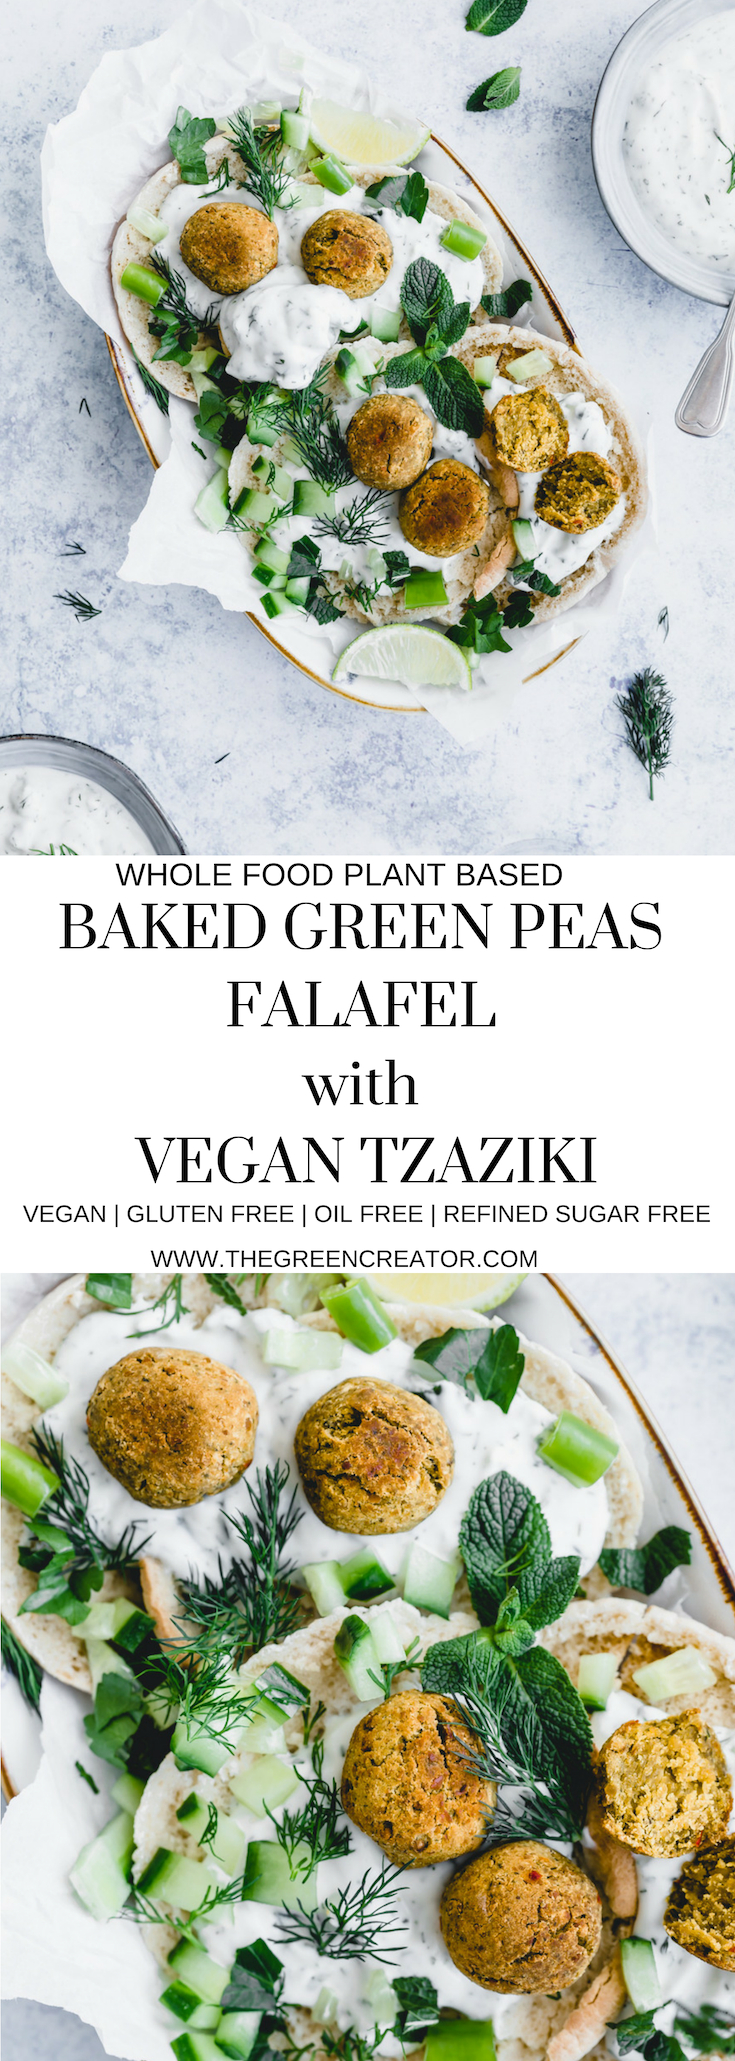 Baked Green Peas Falafel with Vegan Tzatziki